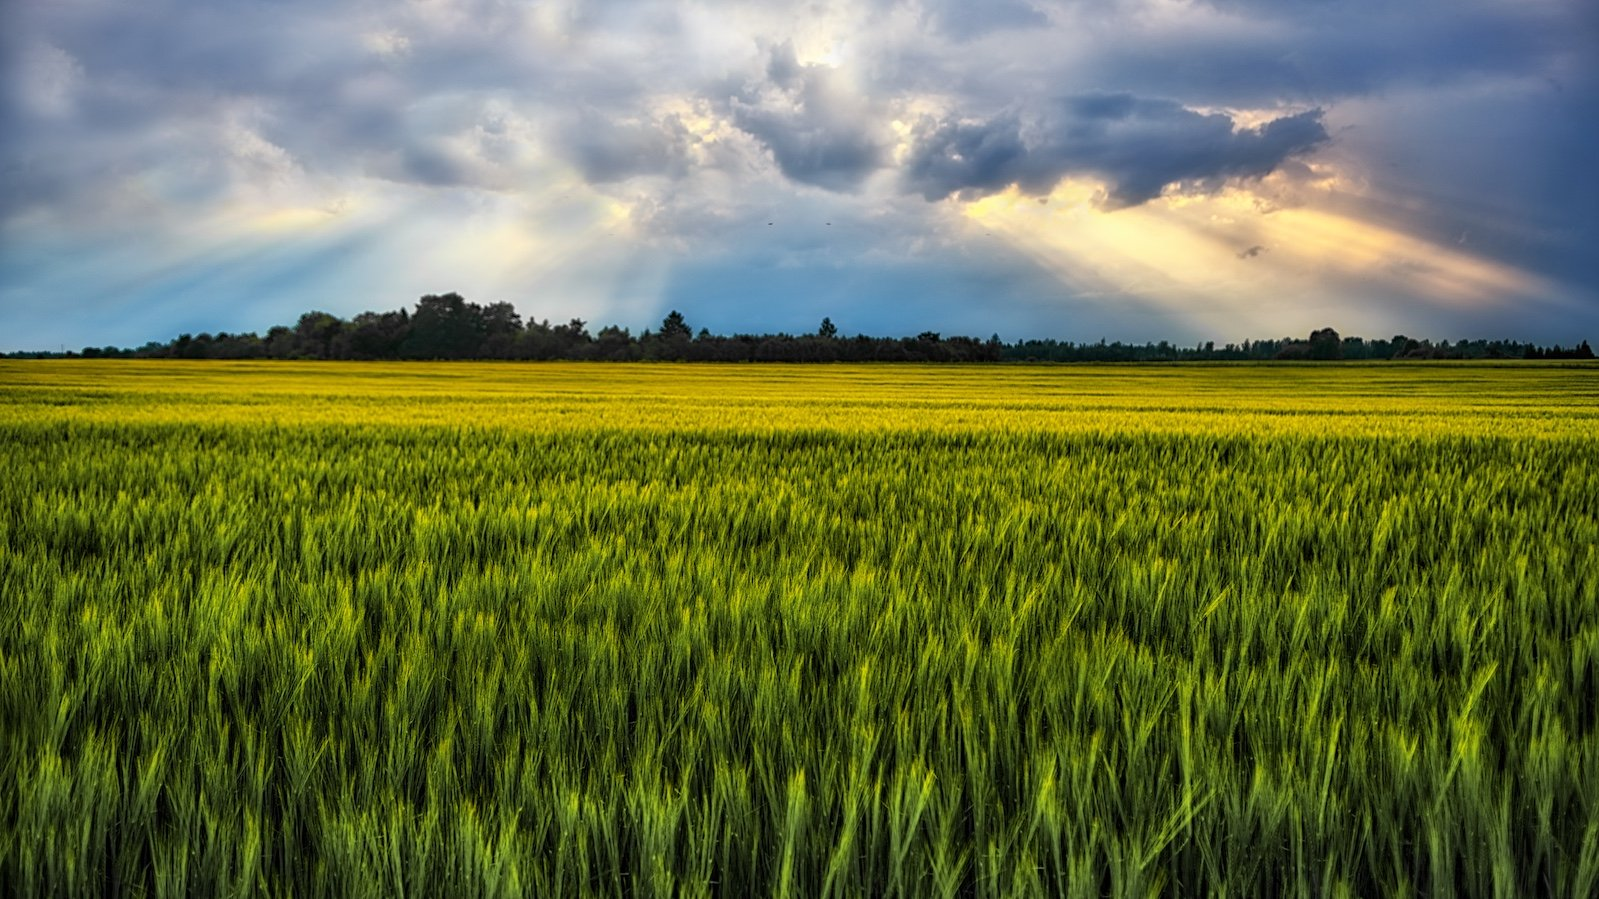 Estonia, Europe, field, barley field, bright, sunset, sun, ray, light, delicate, summer, landscape, nature, outdoor, simplicity , plant, colorful, botanic, panorama, grow up, travel, travel destination, clouds, evening, travel and tourism, trees, view, su, Эдуард Горобец